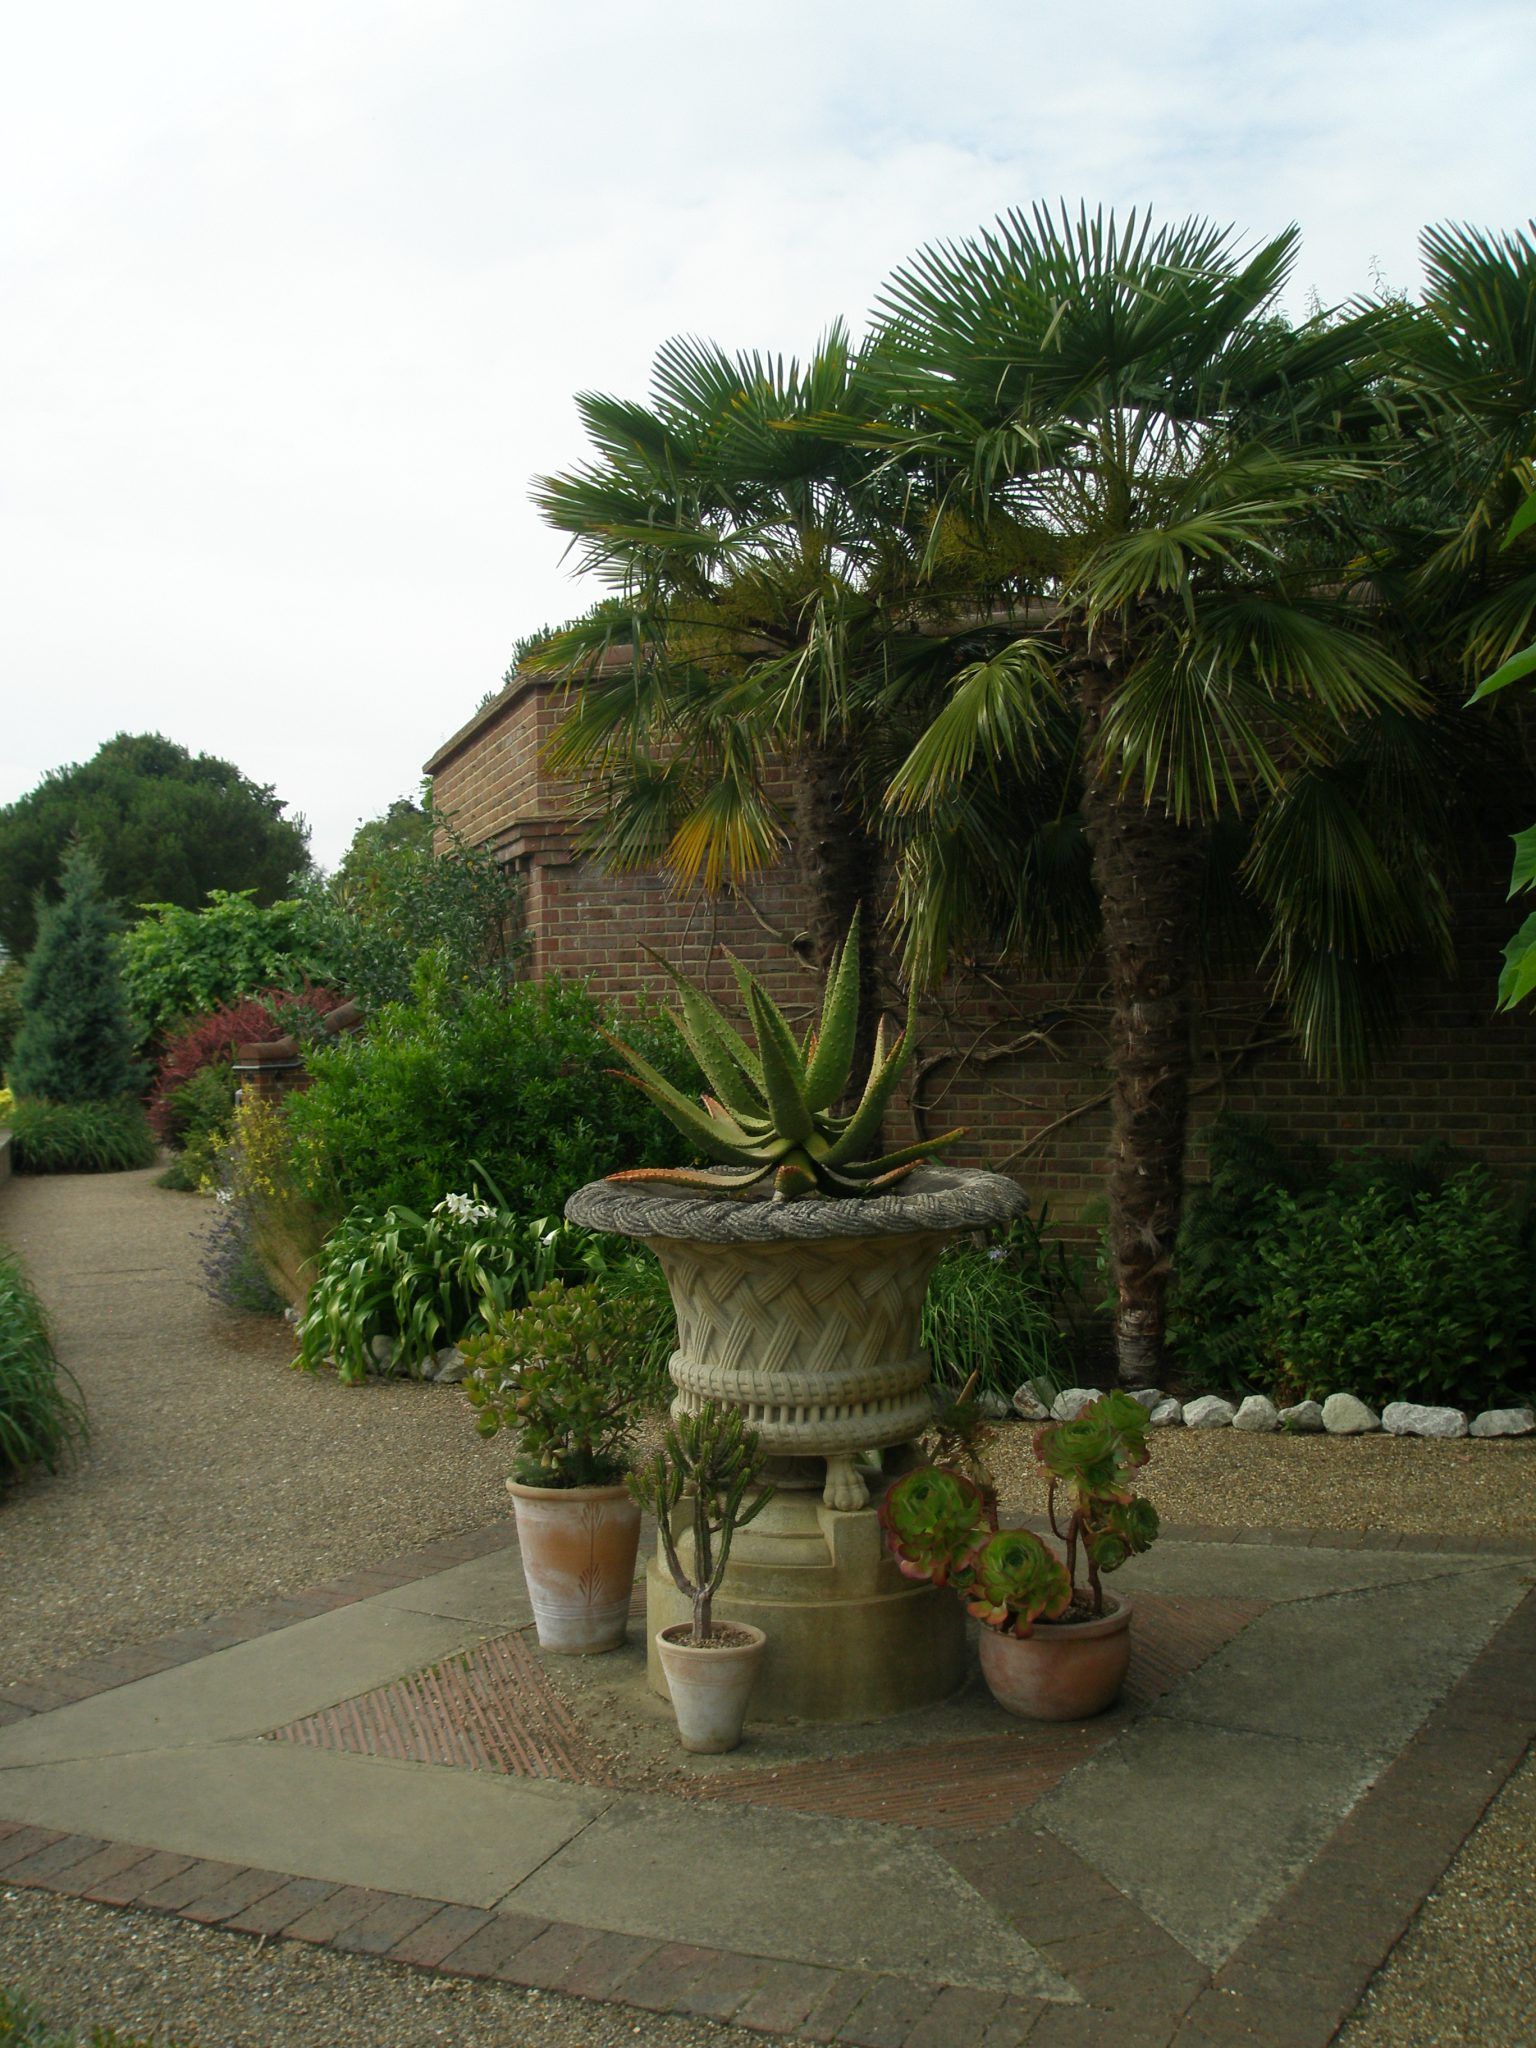 Another view of the Lady Baillie Garden Terrace.